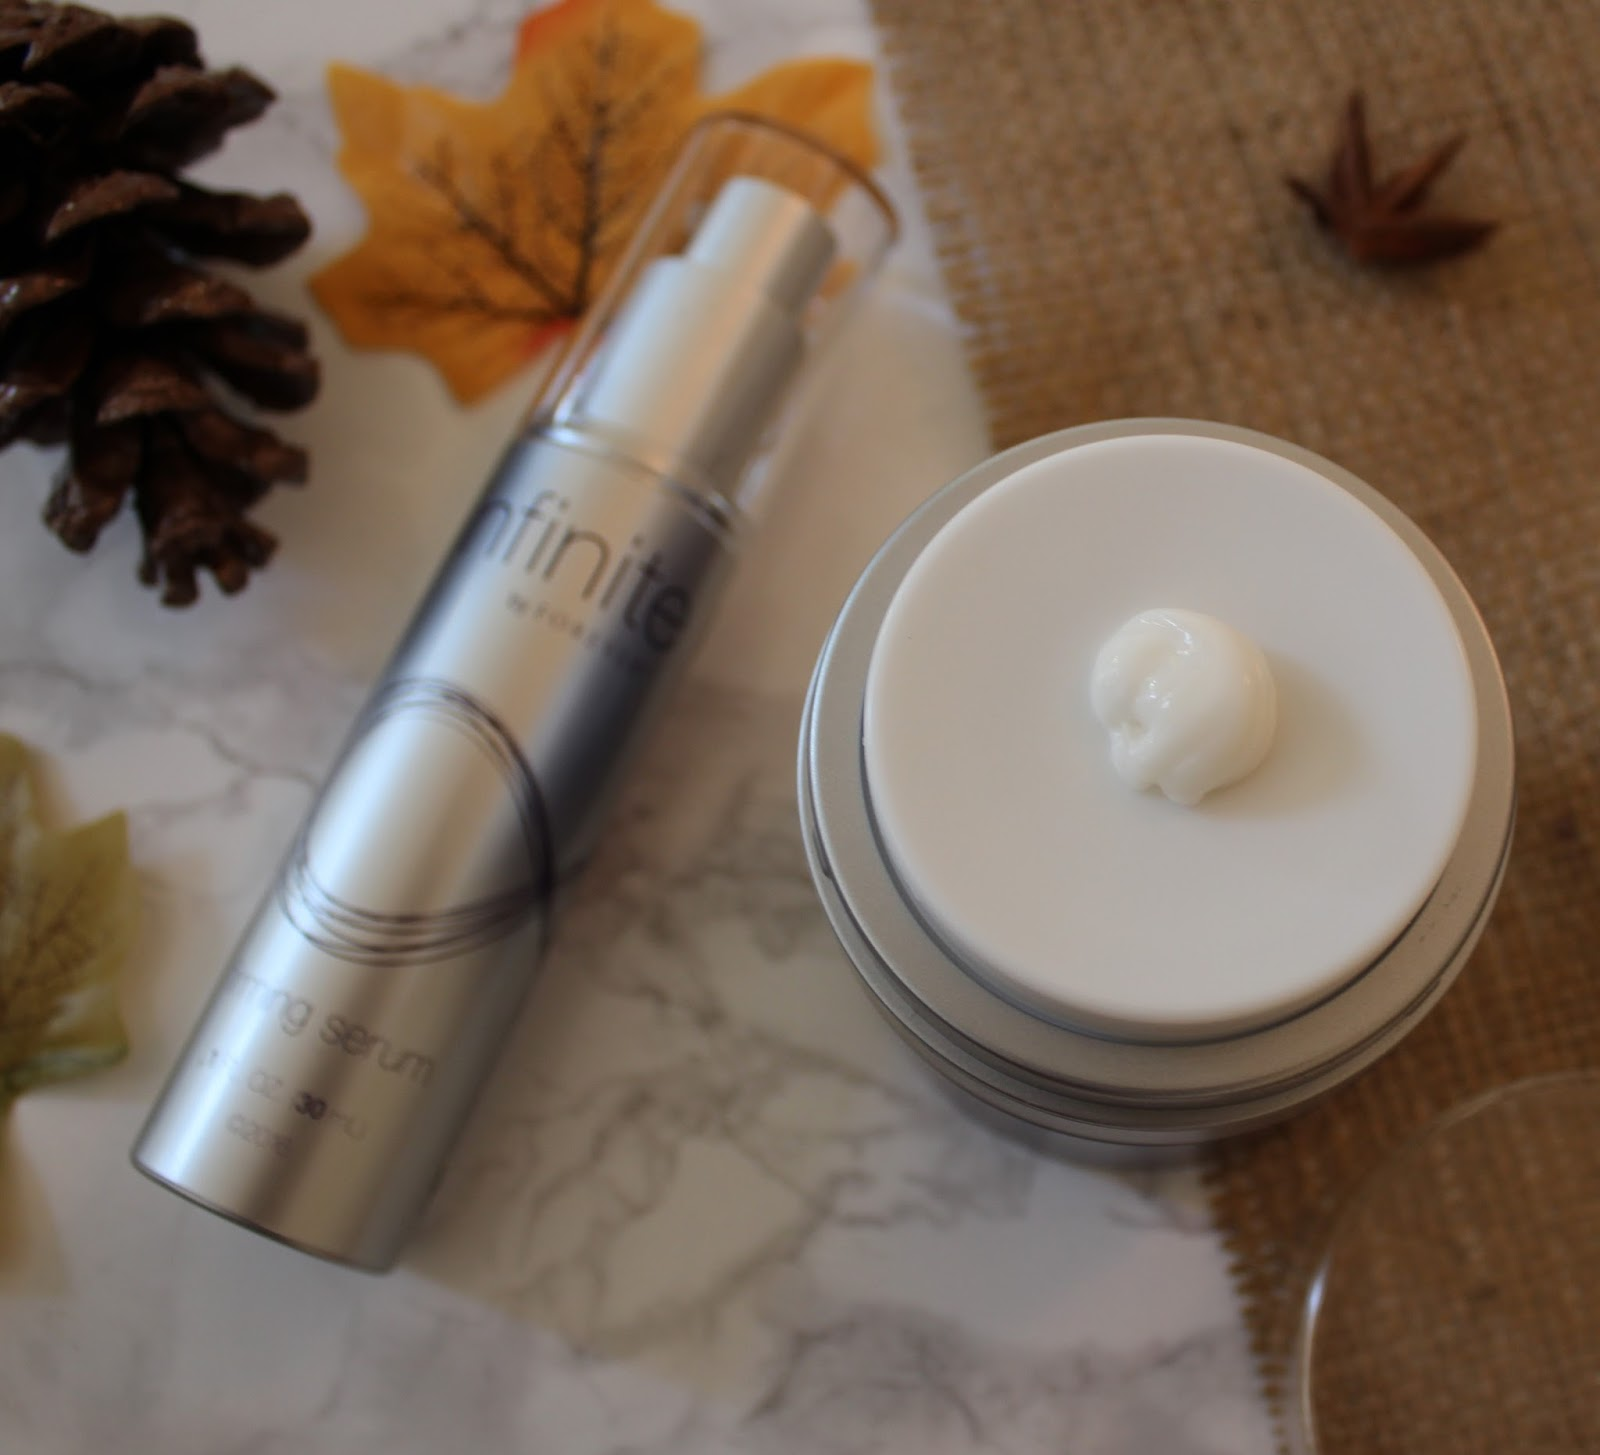 Infinite By Forever Skincare Review - 10